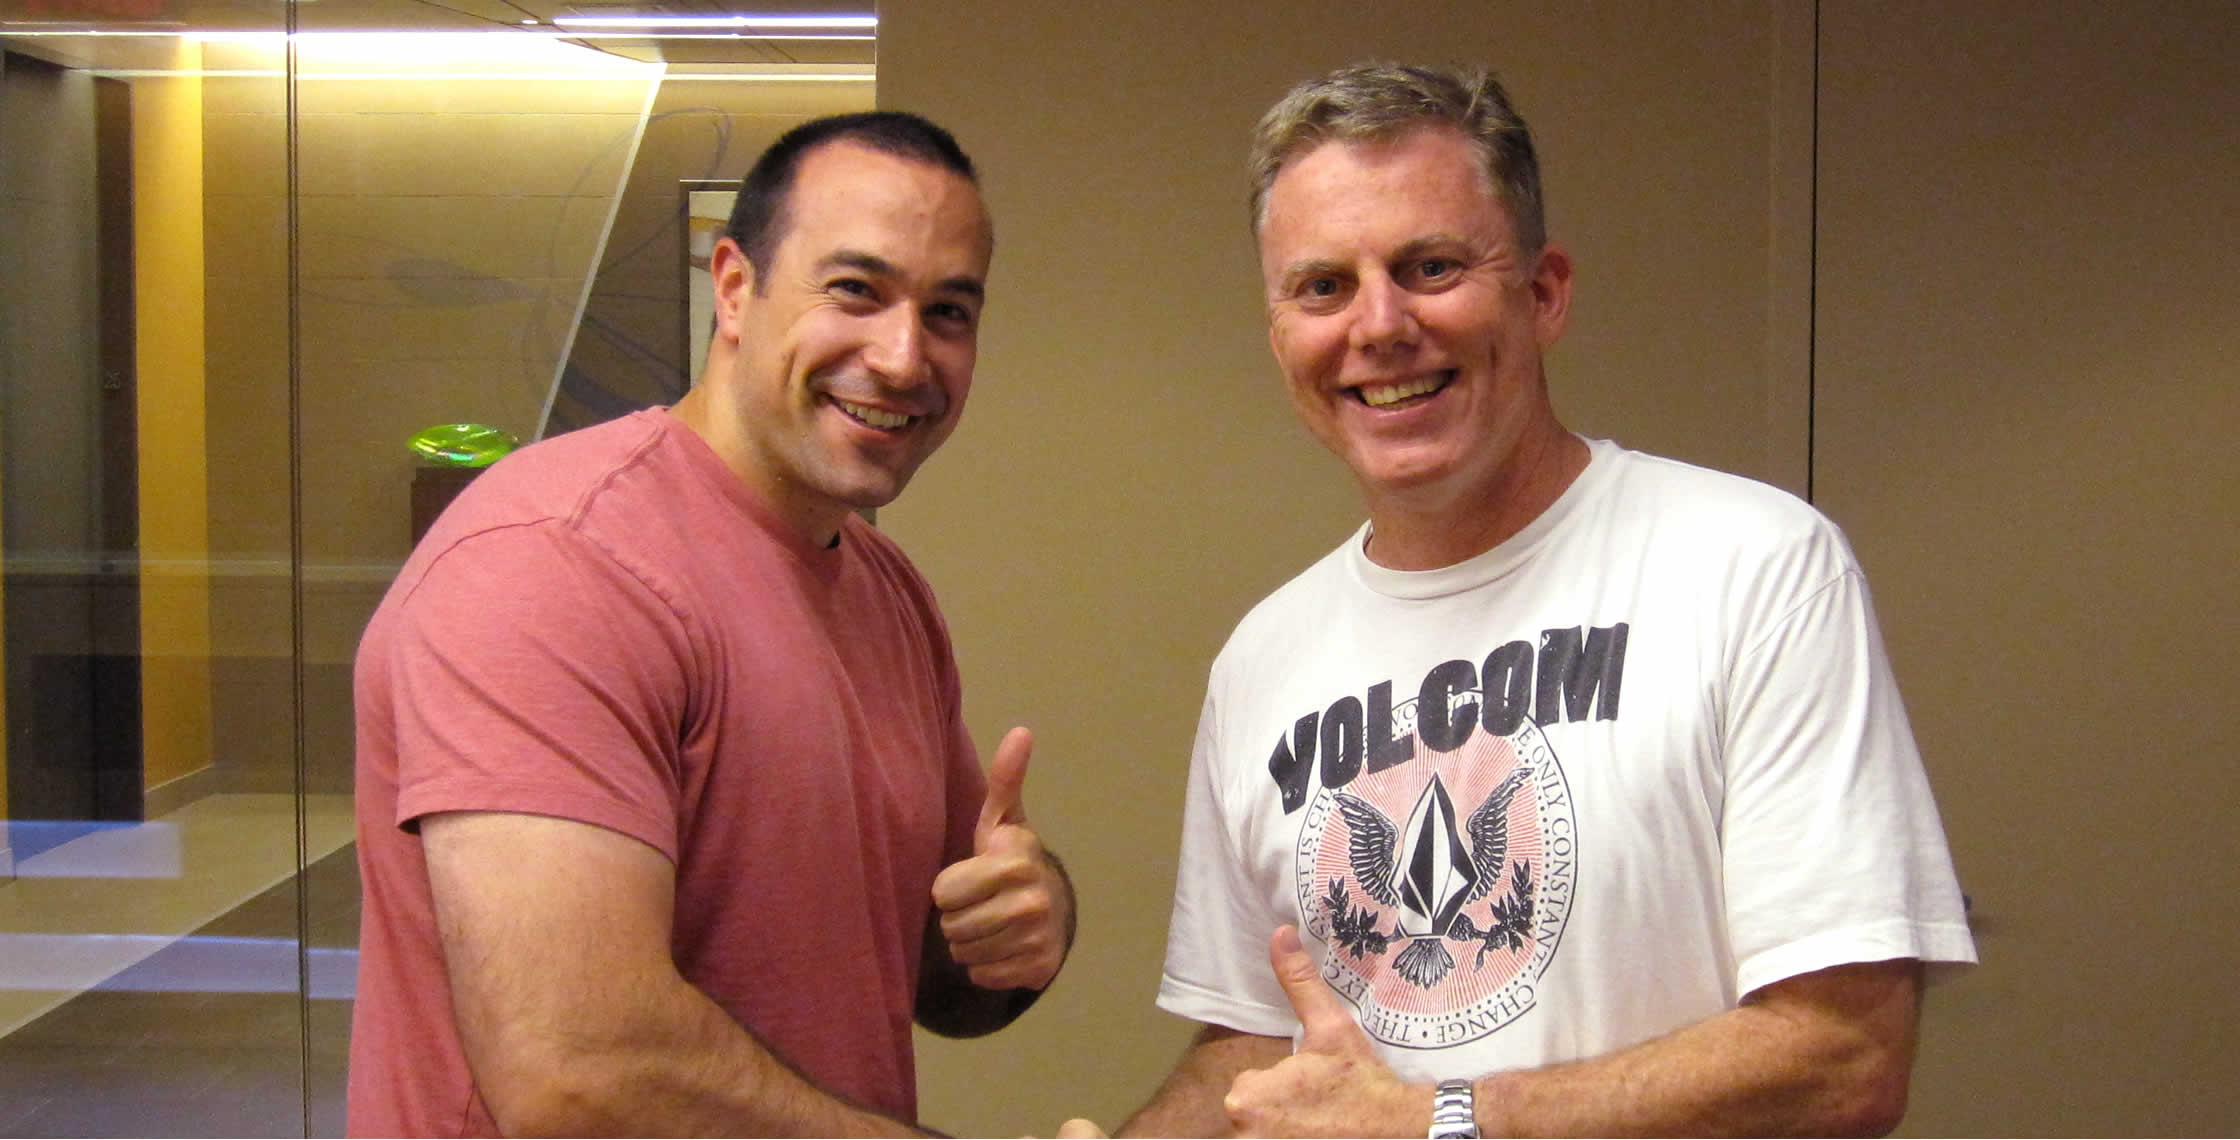 Ben Nadel at InVision Office 2012 (New York City) with: Bill Nourse